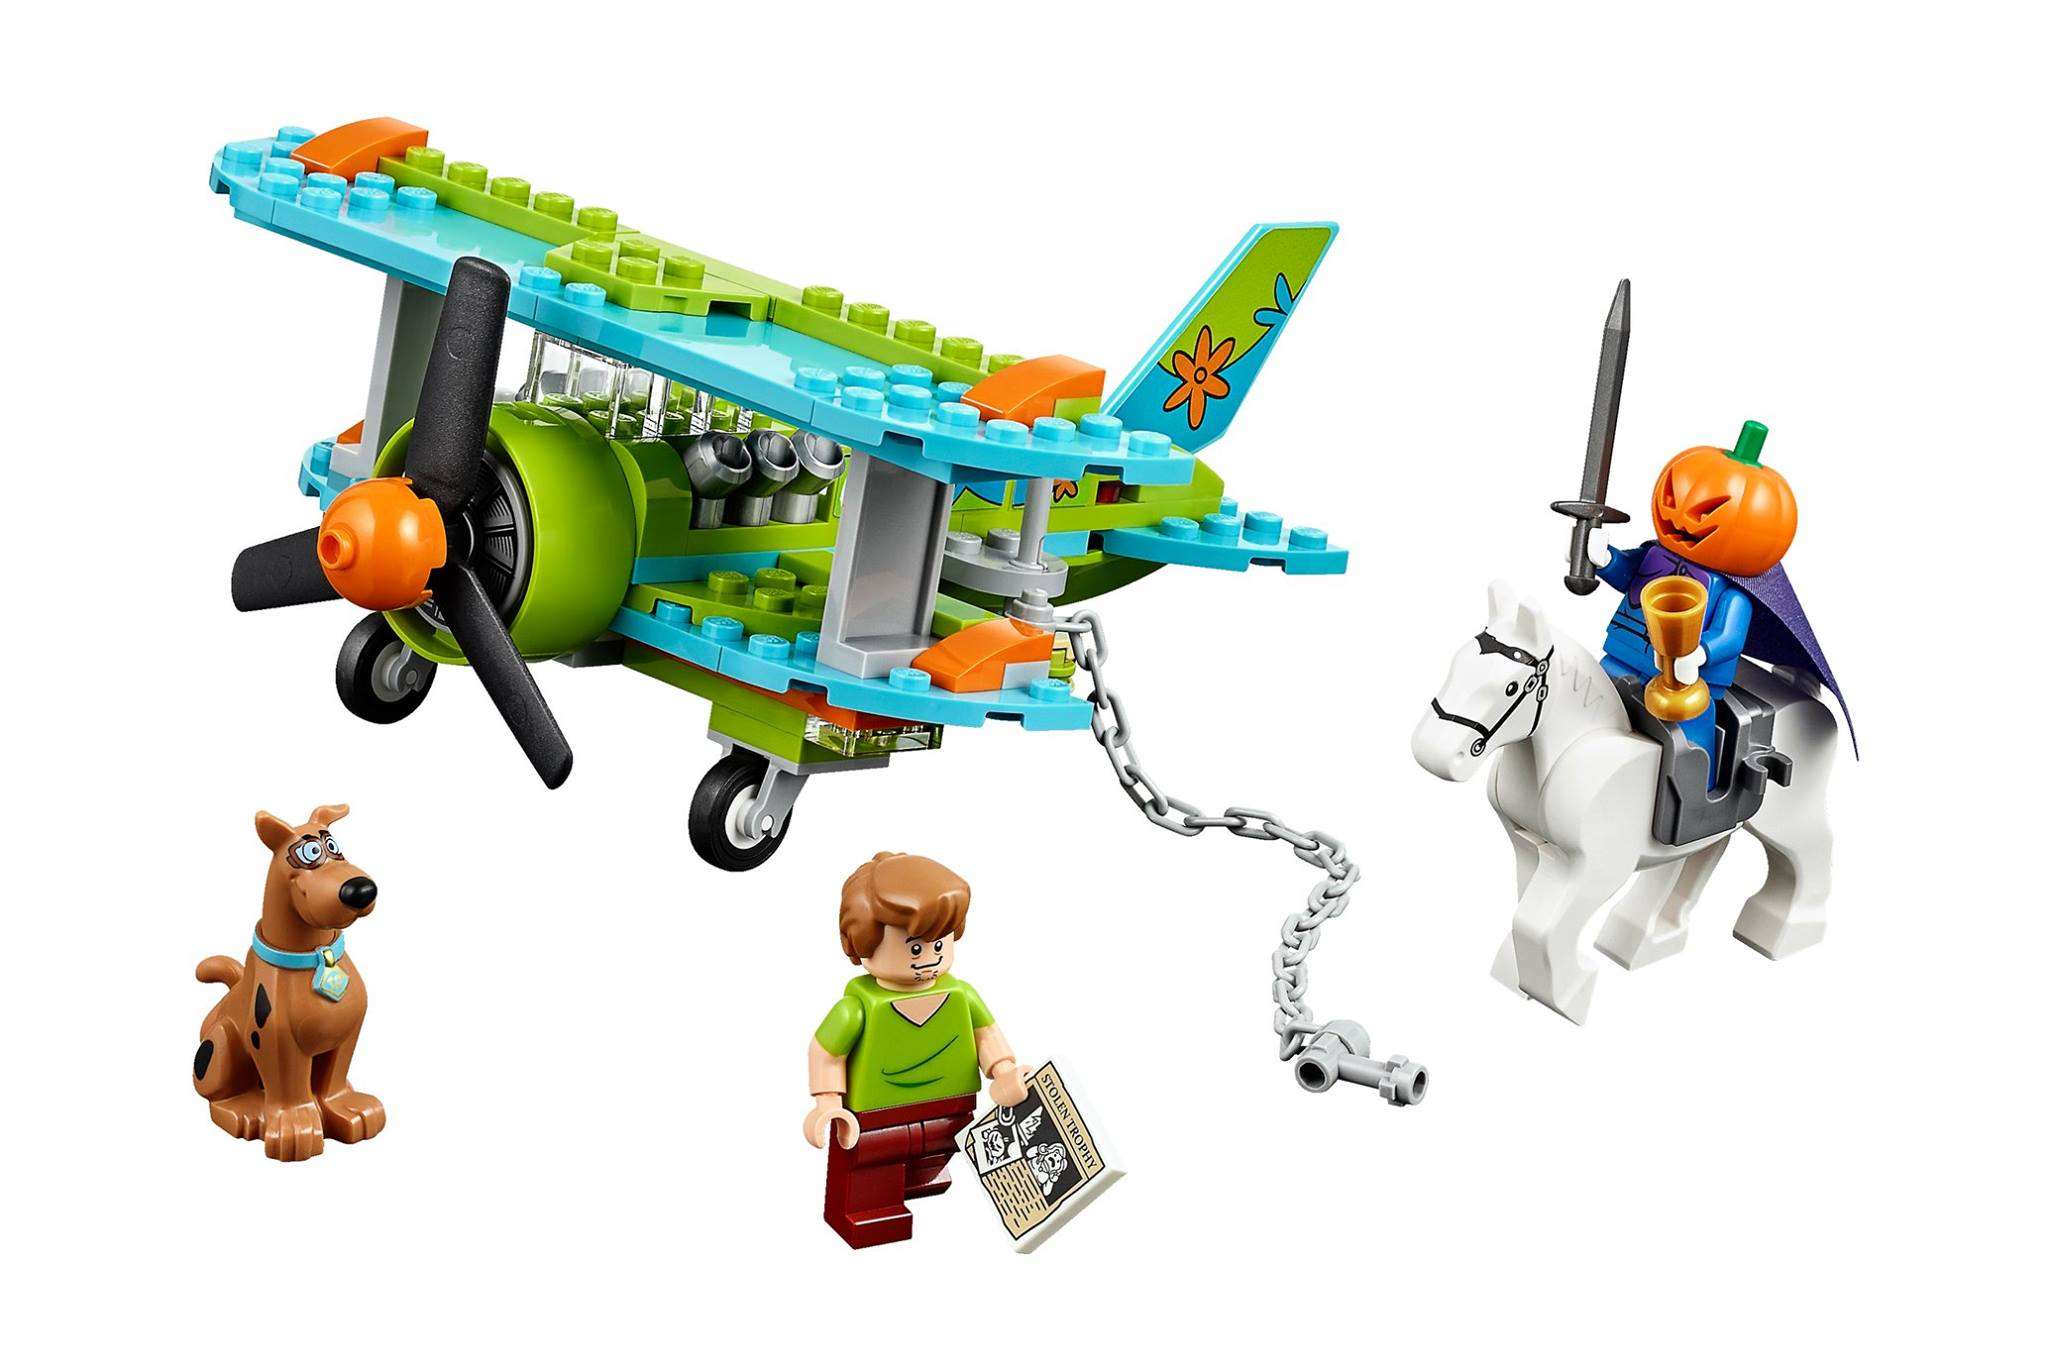 Lego Scooby Doo Sets Arriving In August 2015